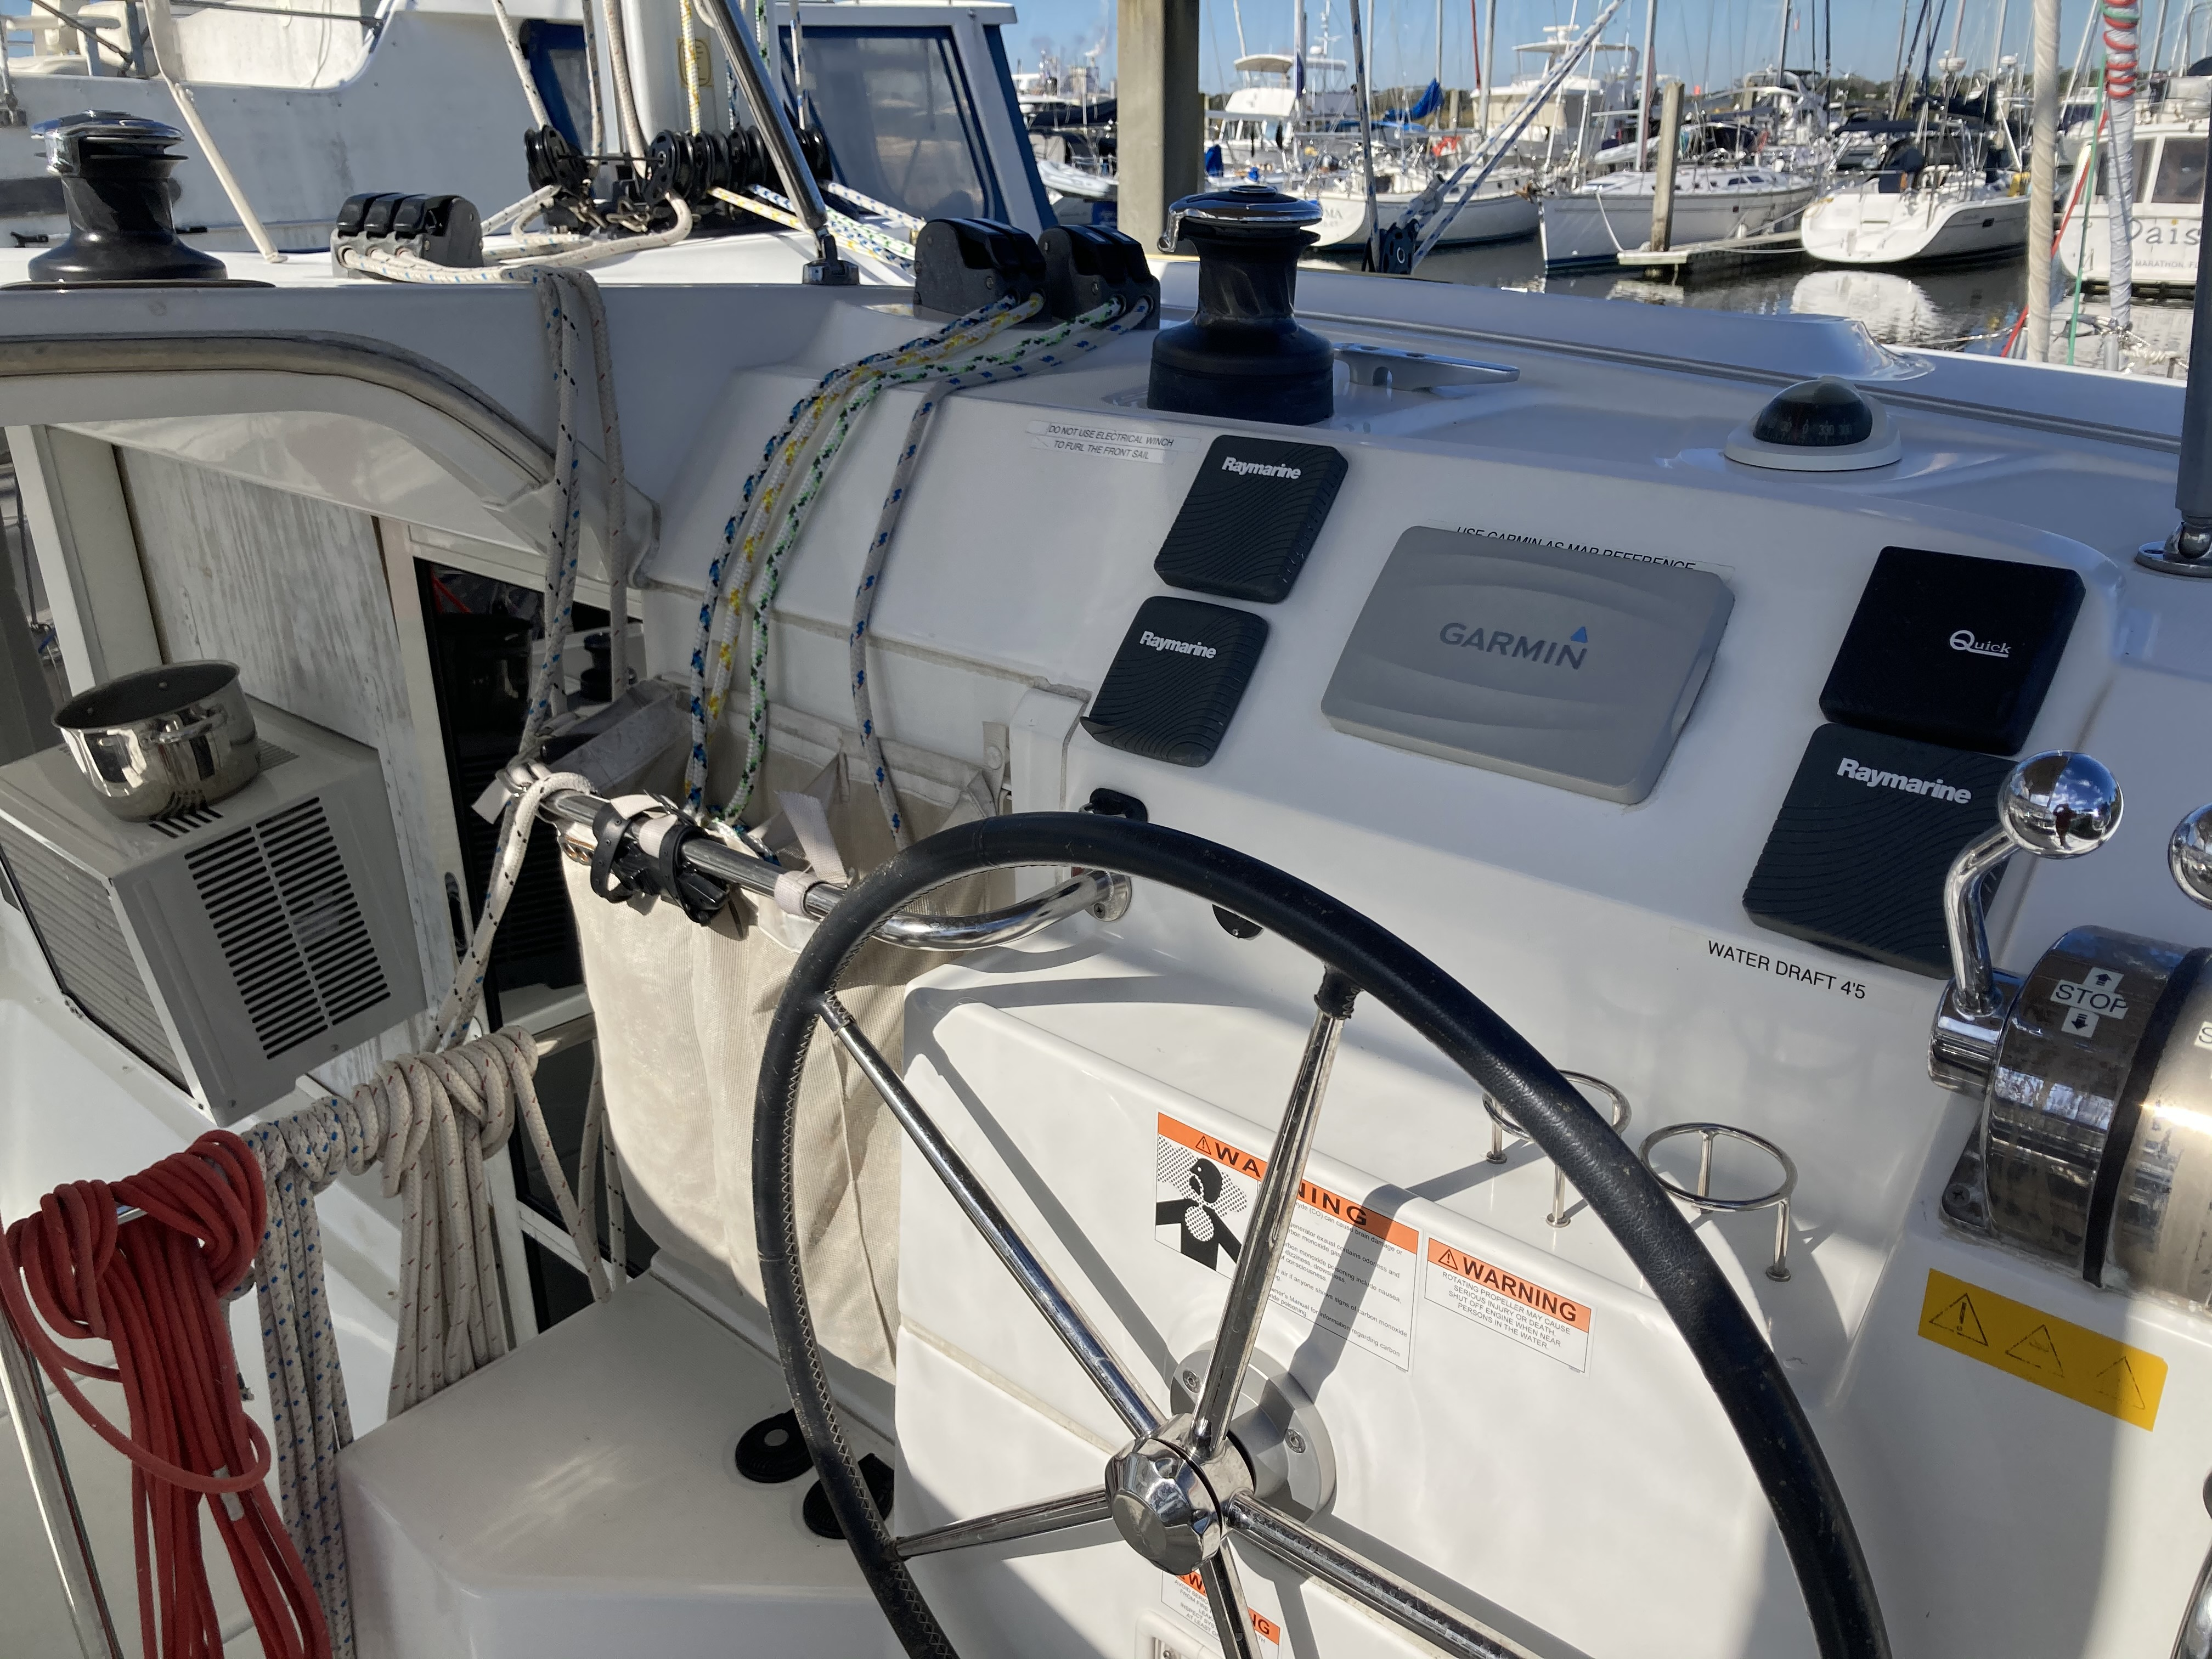 2014 lagoon 39 catamaran CARPE DIEM helm station